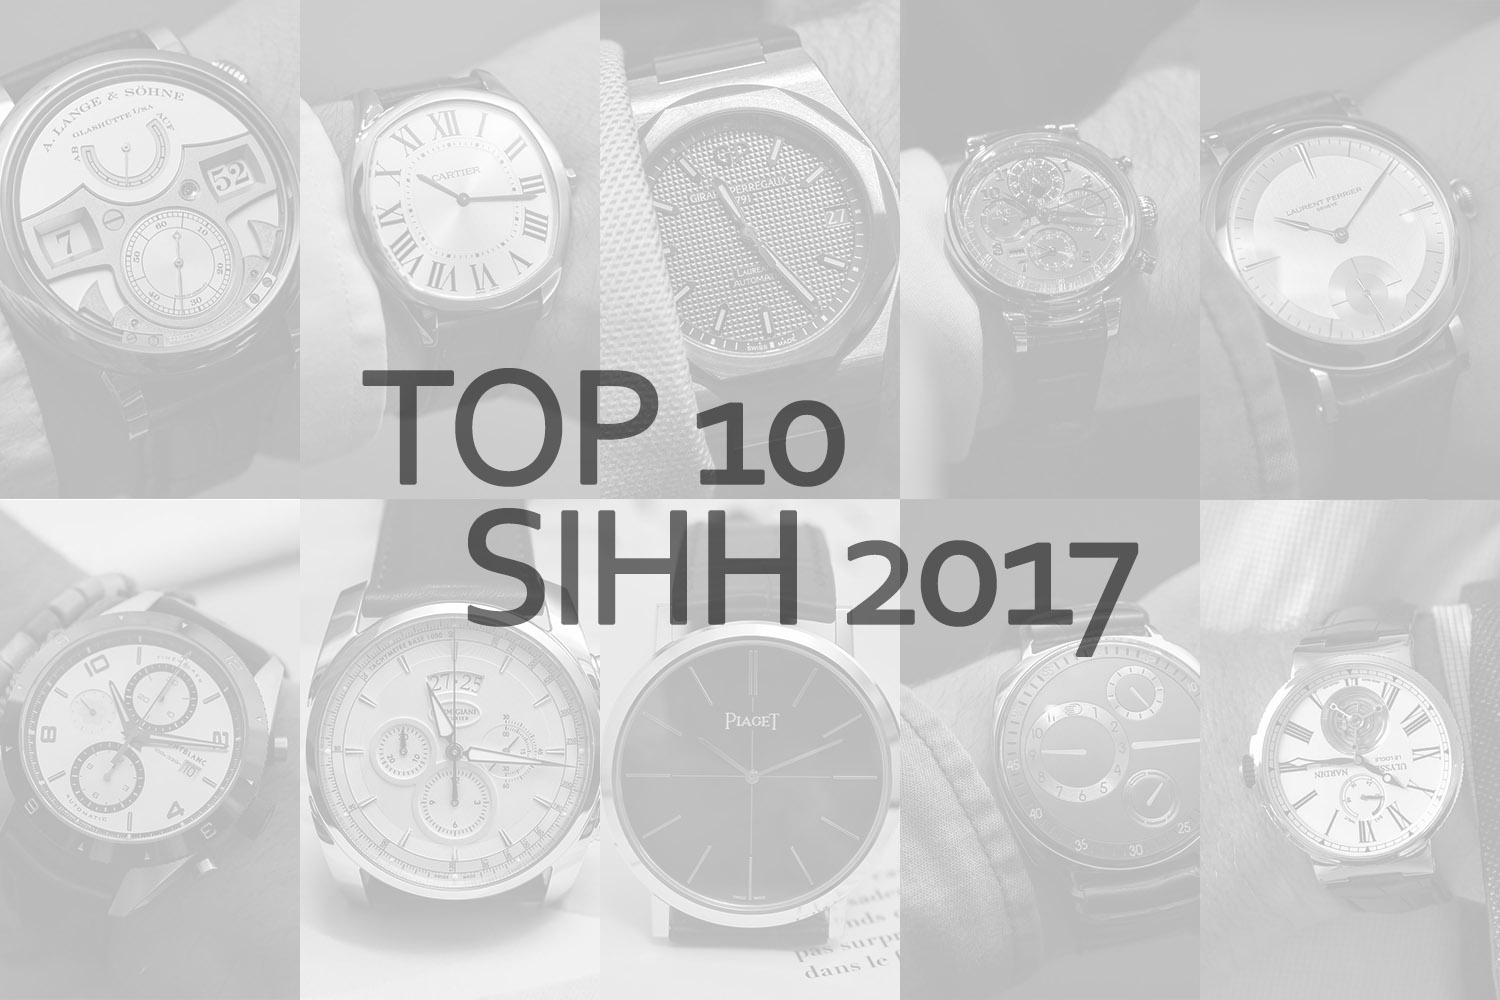 top 10 SIHH 2017 Frank Geelen Monochrome Watches